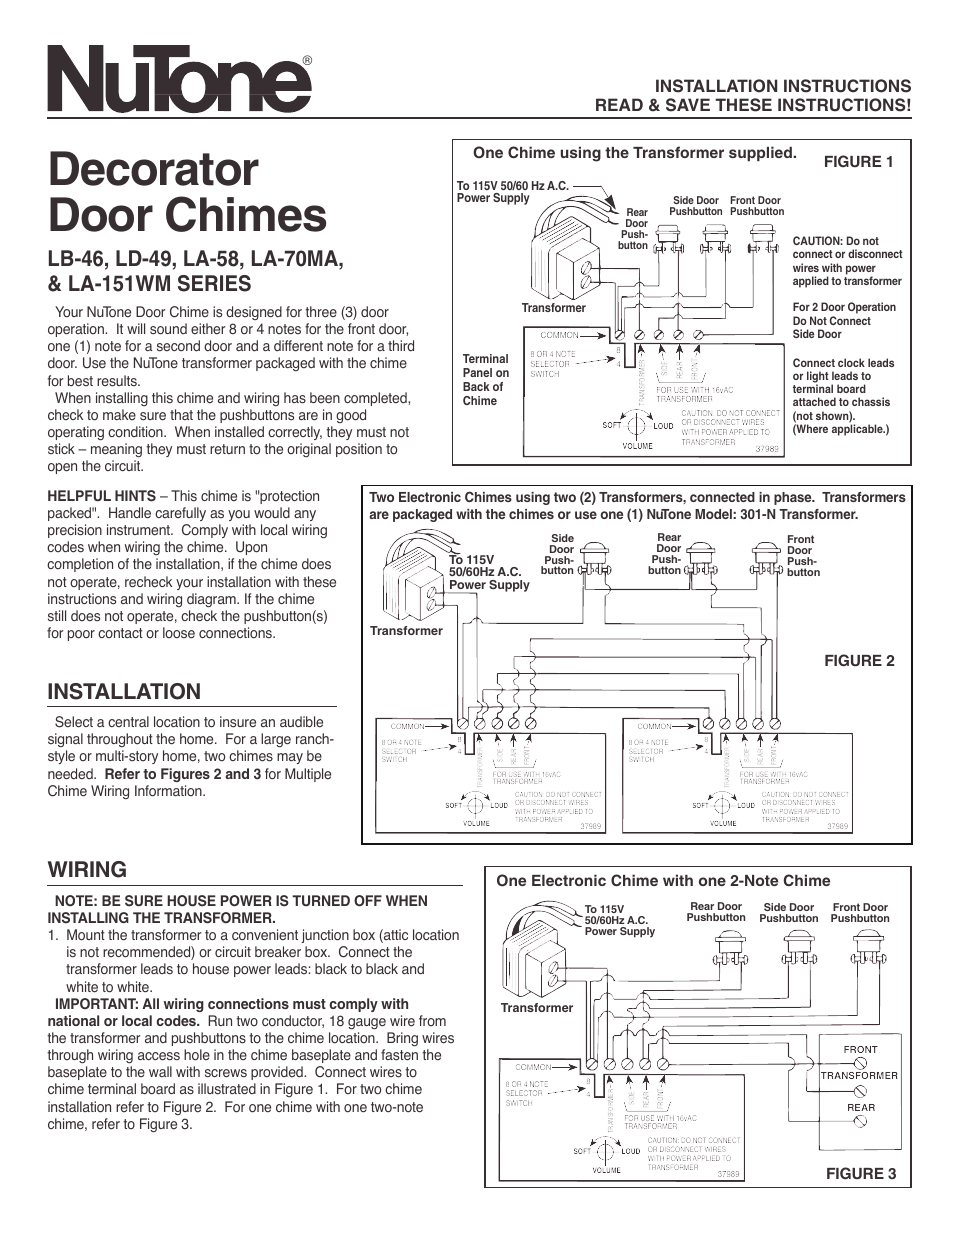 Door Bell Wiring Schematics Another Blog About Diagram Nutone Chime 32